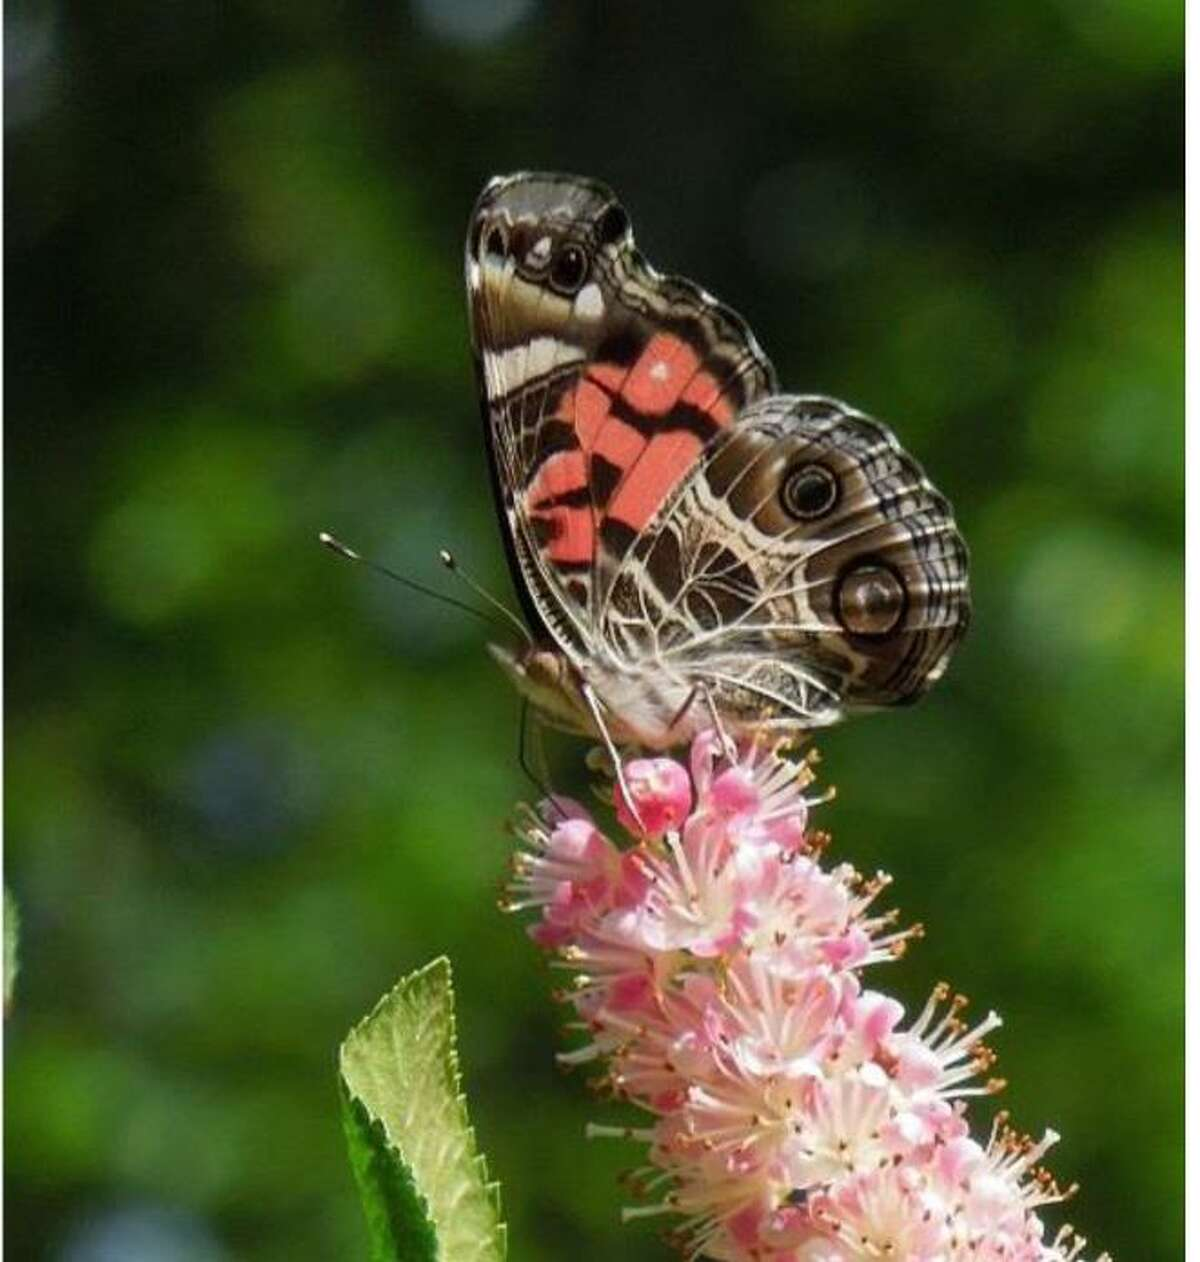 Author, illustrator and naturalist John Himmelman will present a program on butterflies at the New Hartford Land Trust's meeting March 27, 2019.